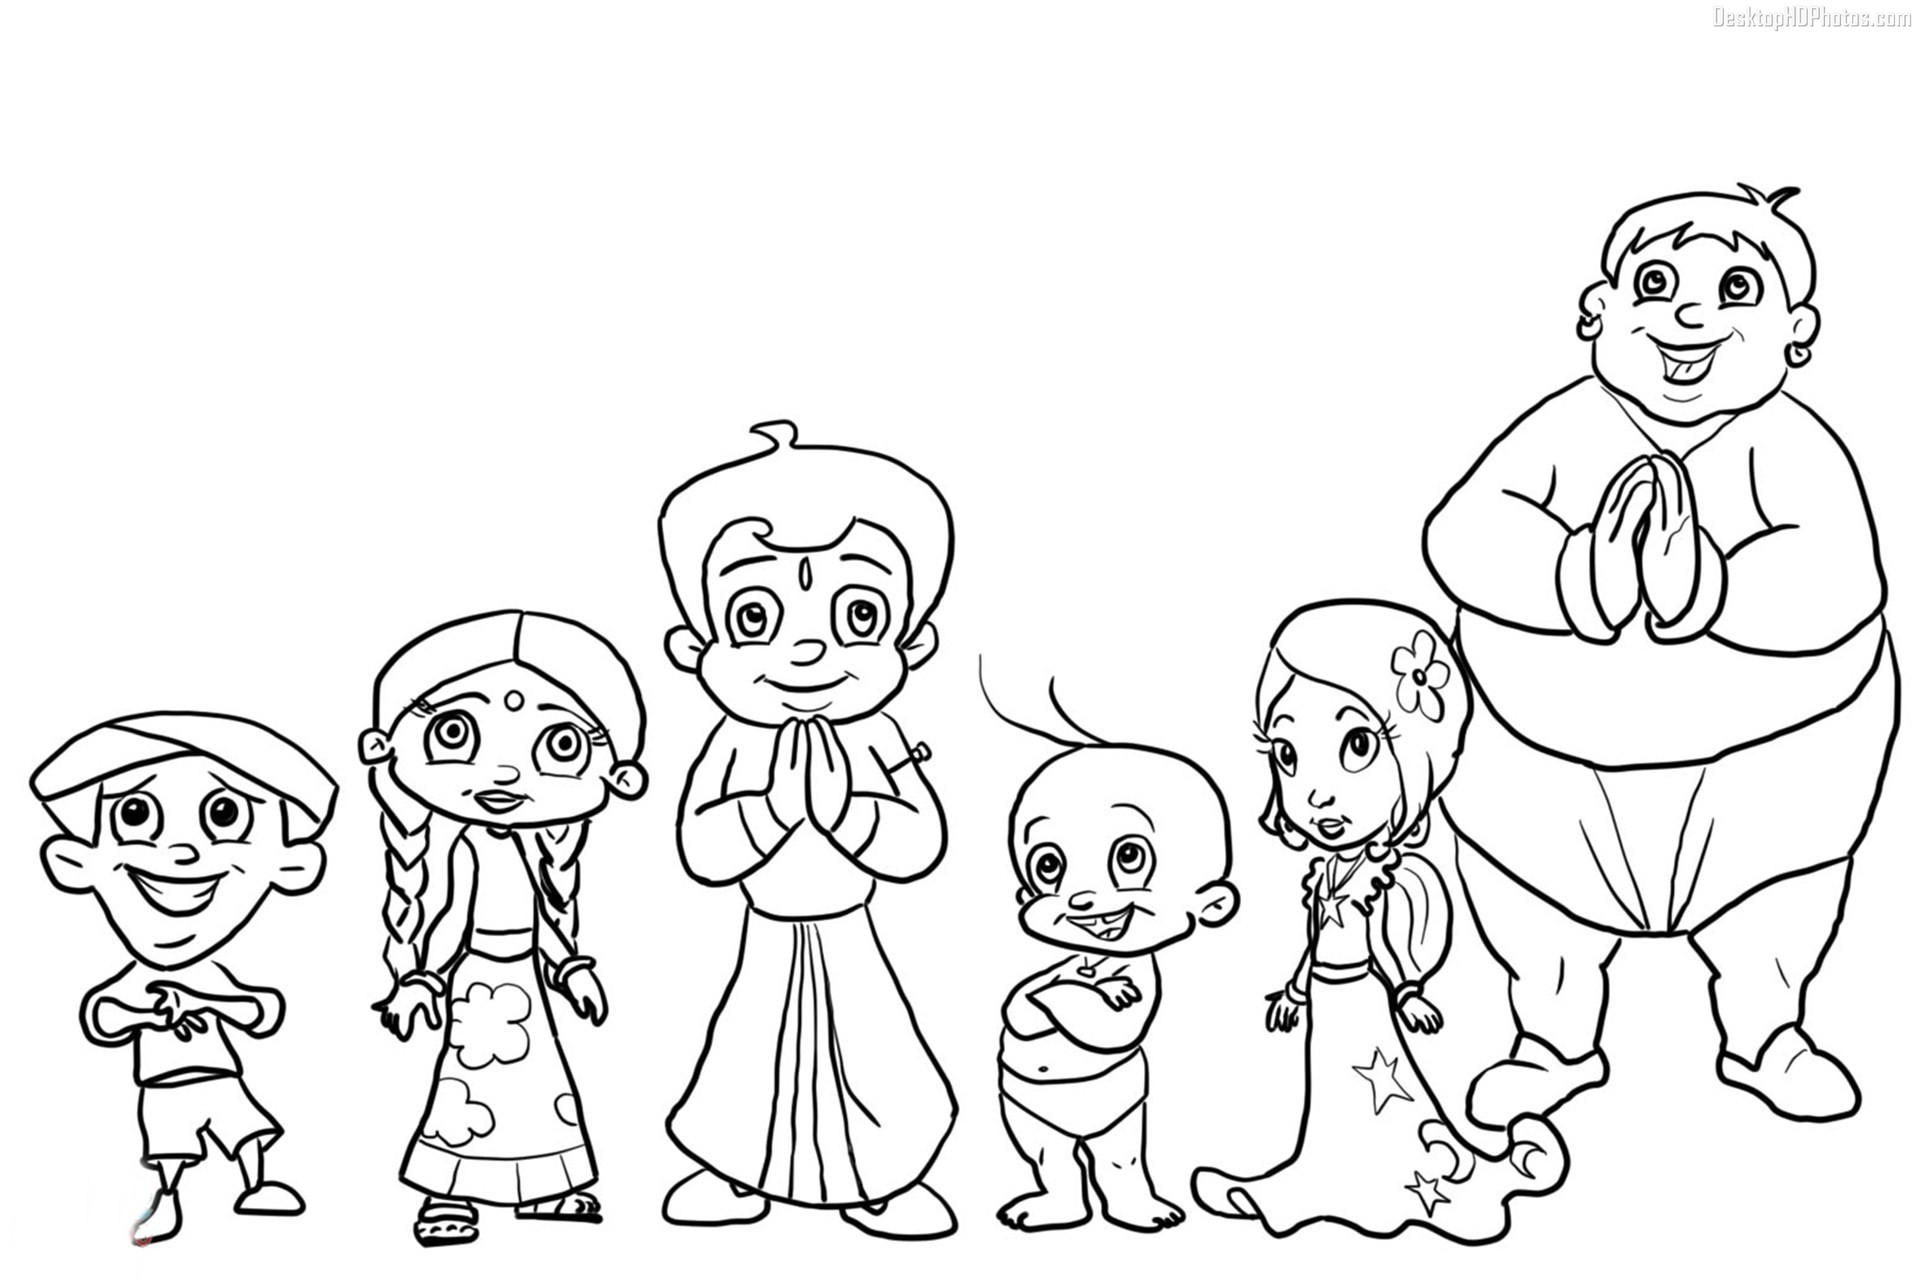 Chota Bheem Coloring pages for kids